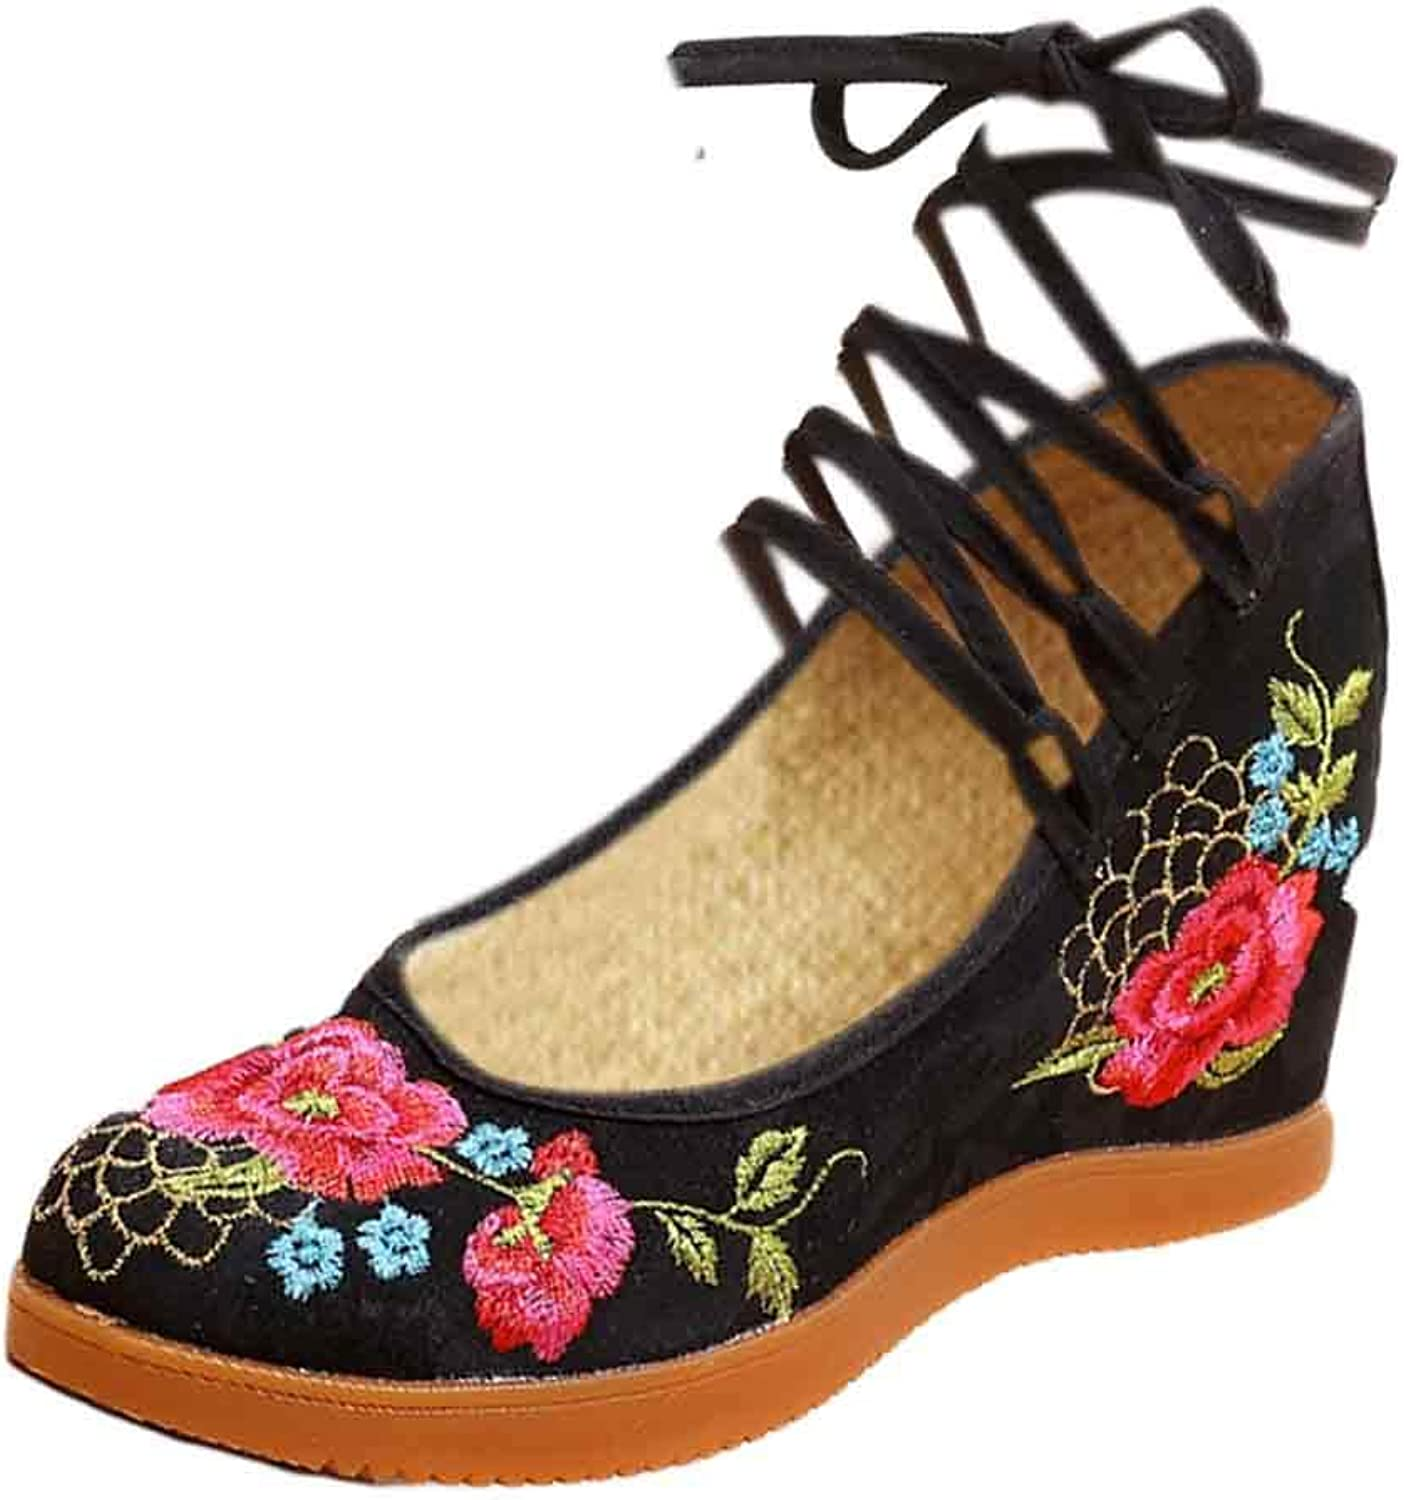 Aiweijia Ladies Retro Flat Solid color Casual Dance Wedge Embroidered shoes